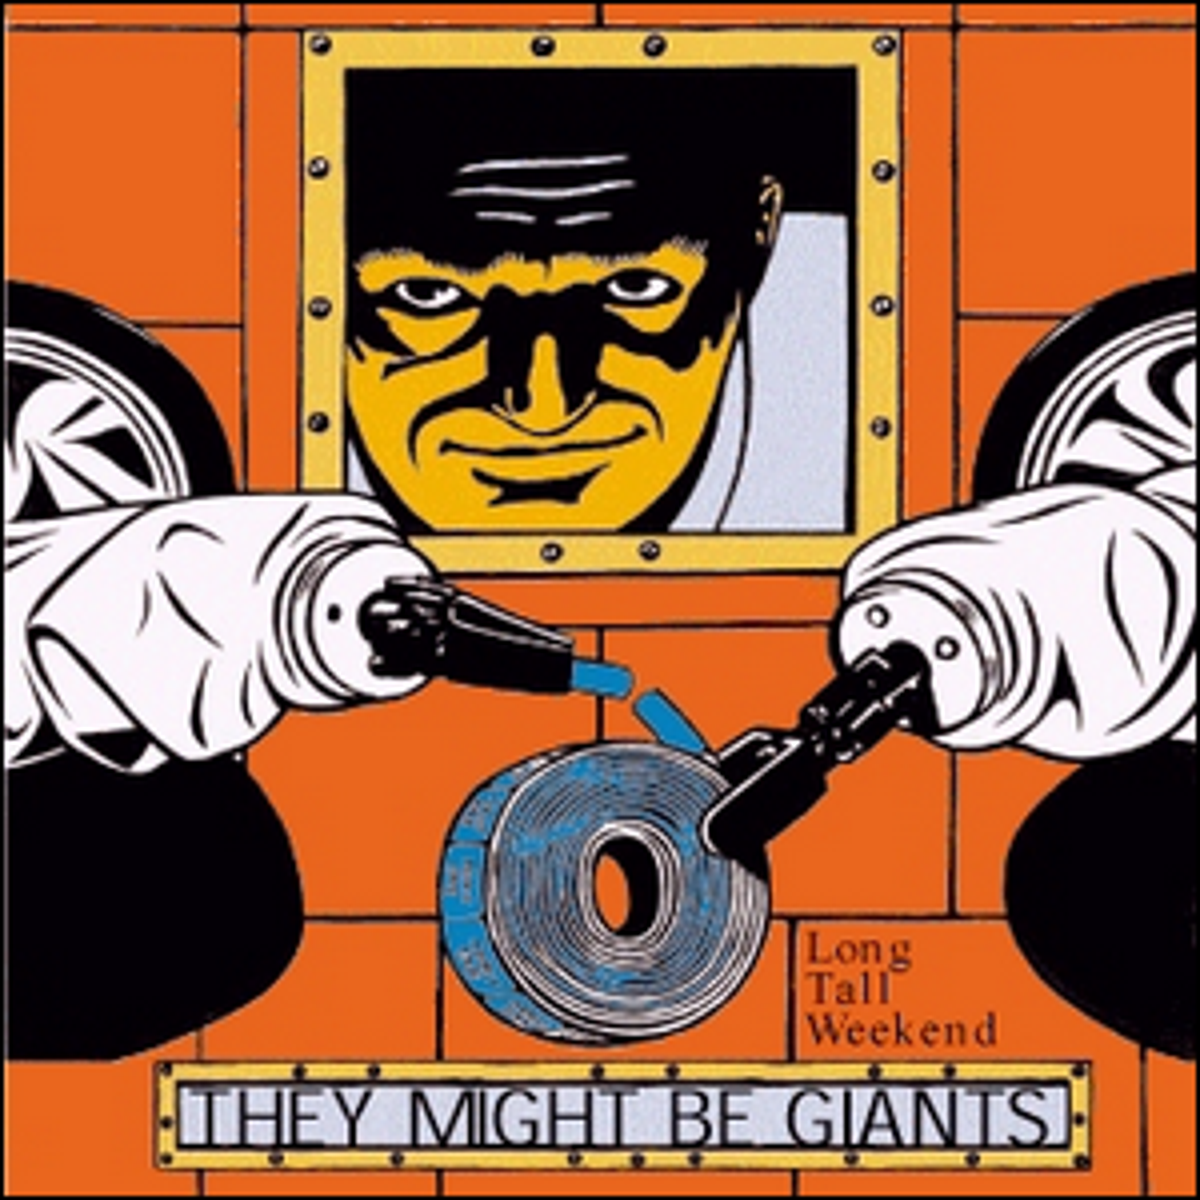 The cover art for the album Long Tall Weekend by They Might Be Giants.